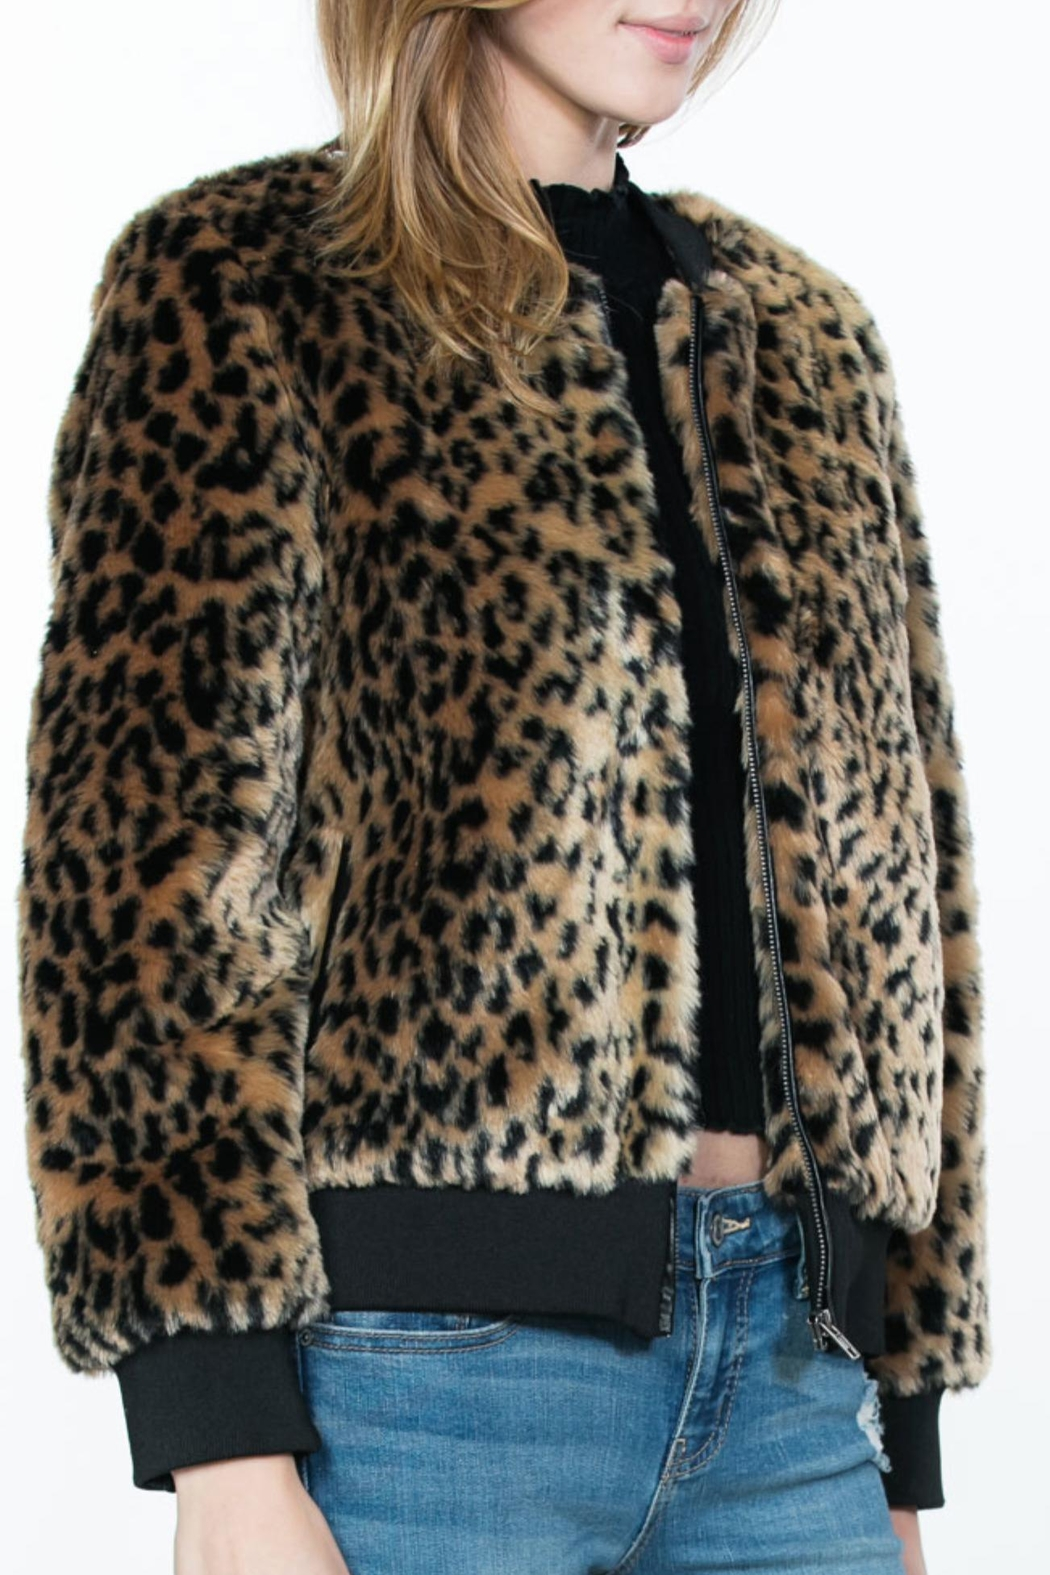 Ark & Co. Leopard Animal-Print Jacket - Side Cropped Image